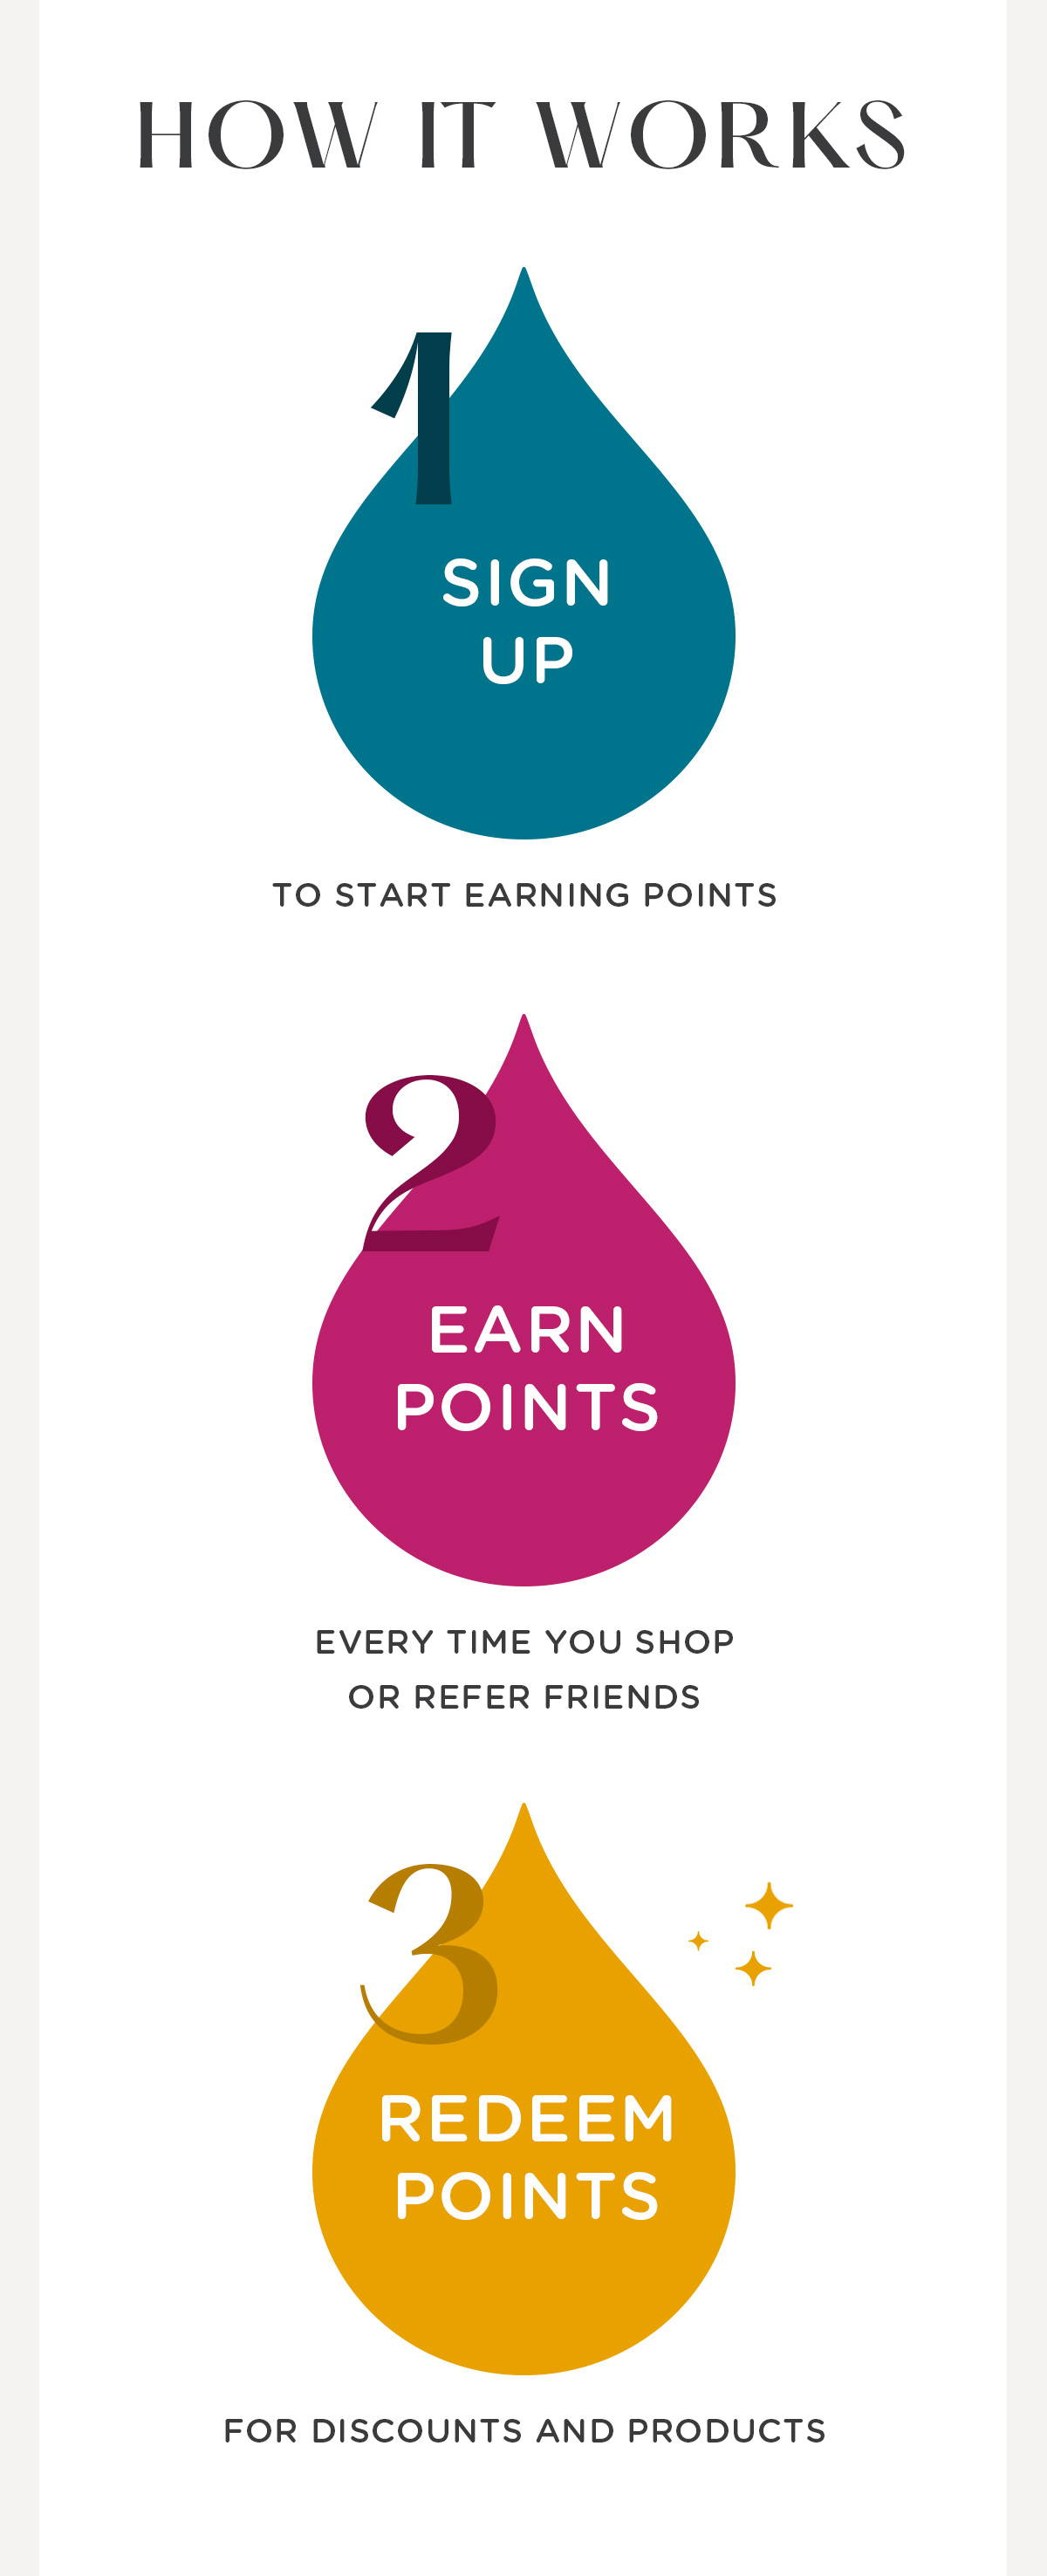 How become a Tea Drops rewards member works